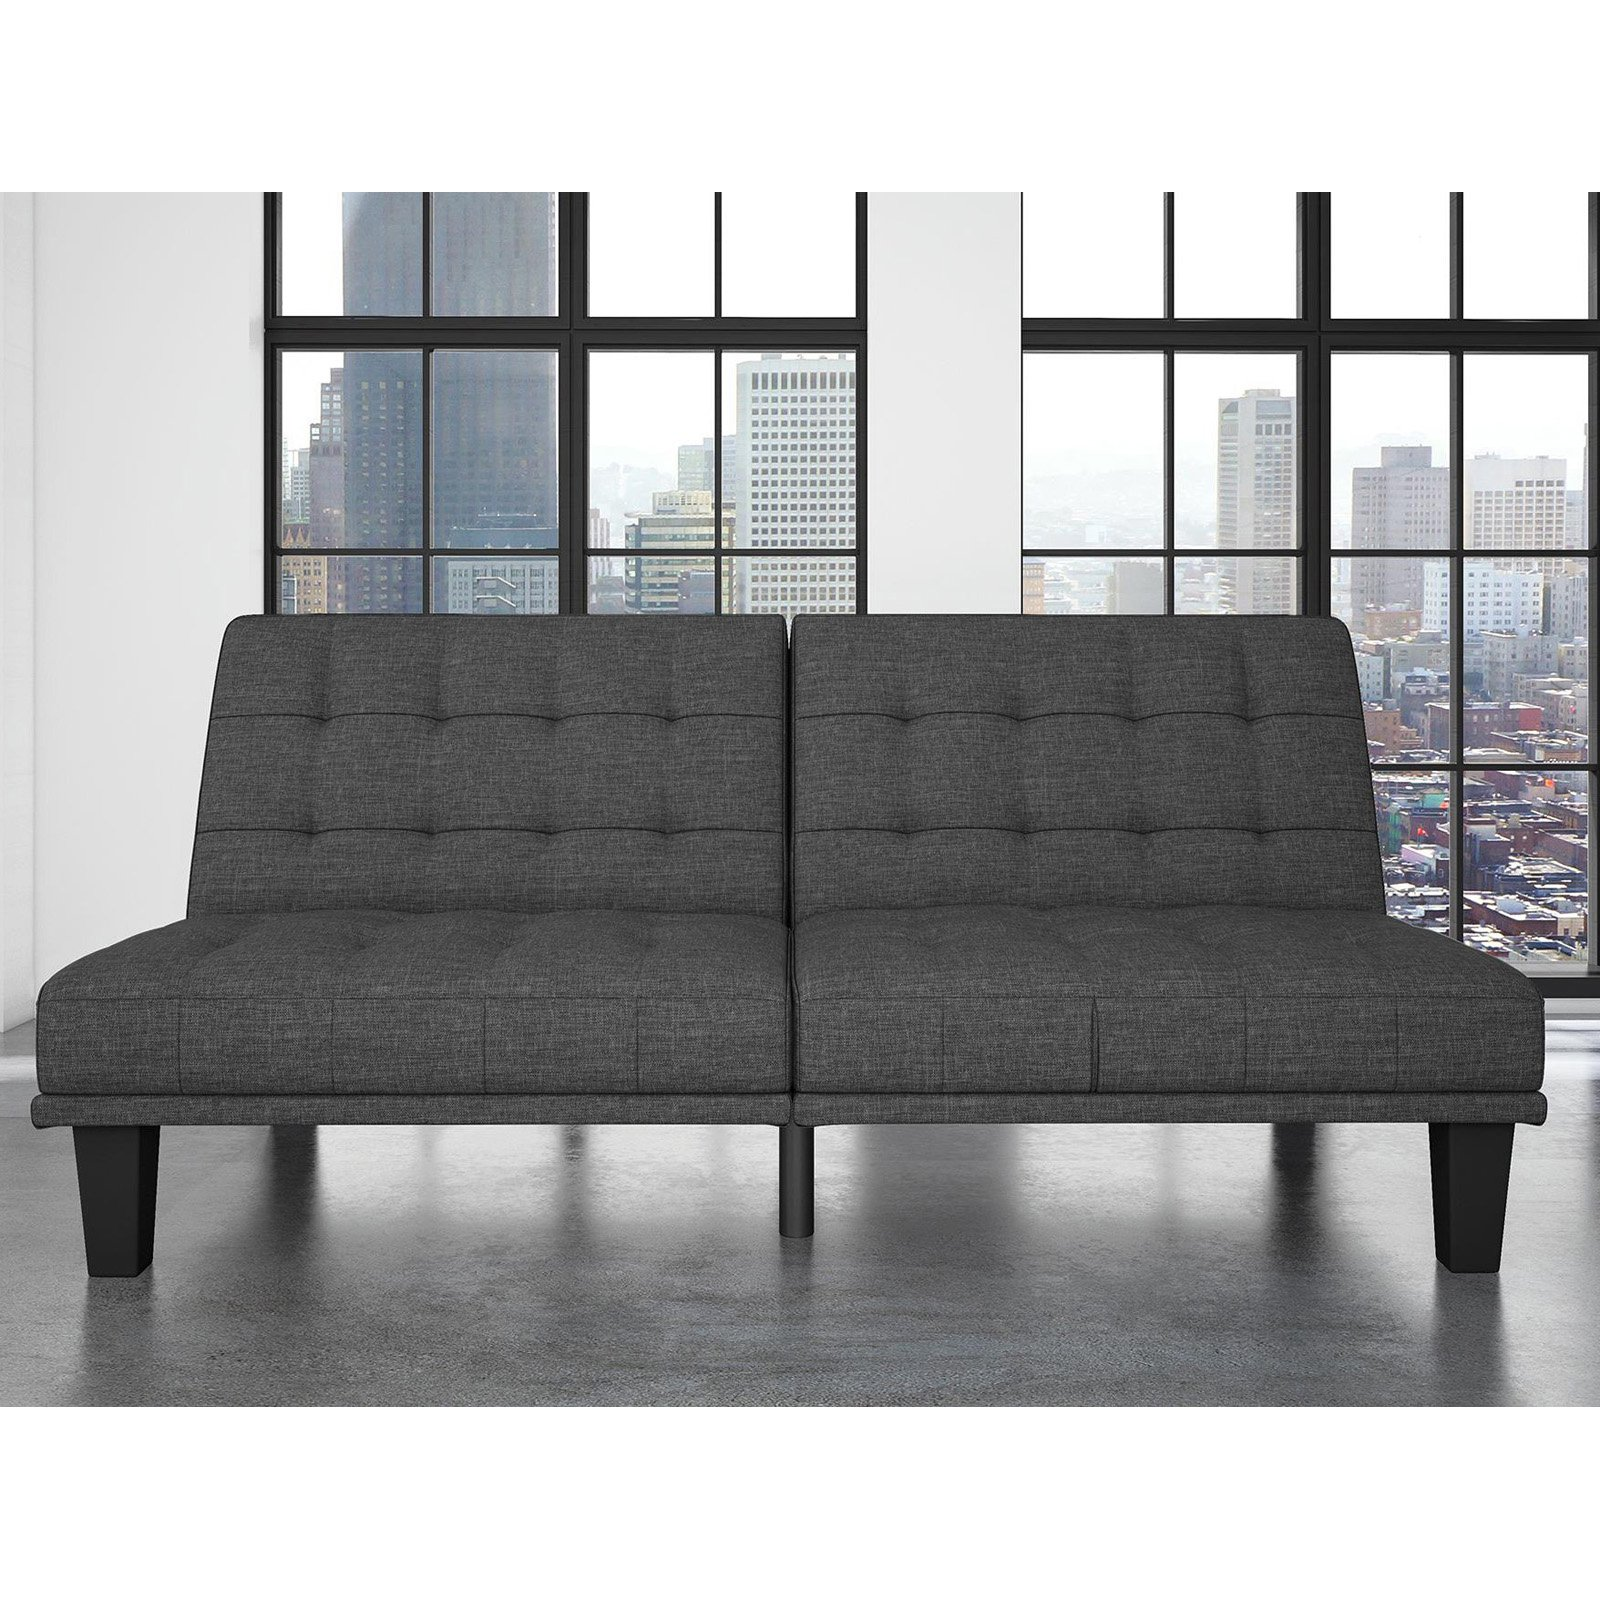 DHP Dexter Fabric Futon and Recliner Lounger Multifunctional Sofa